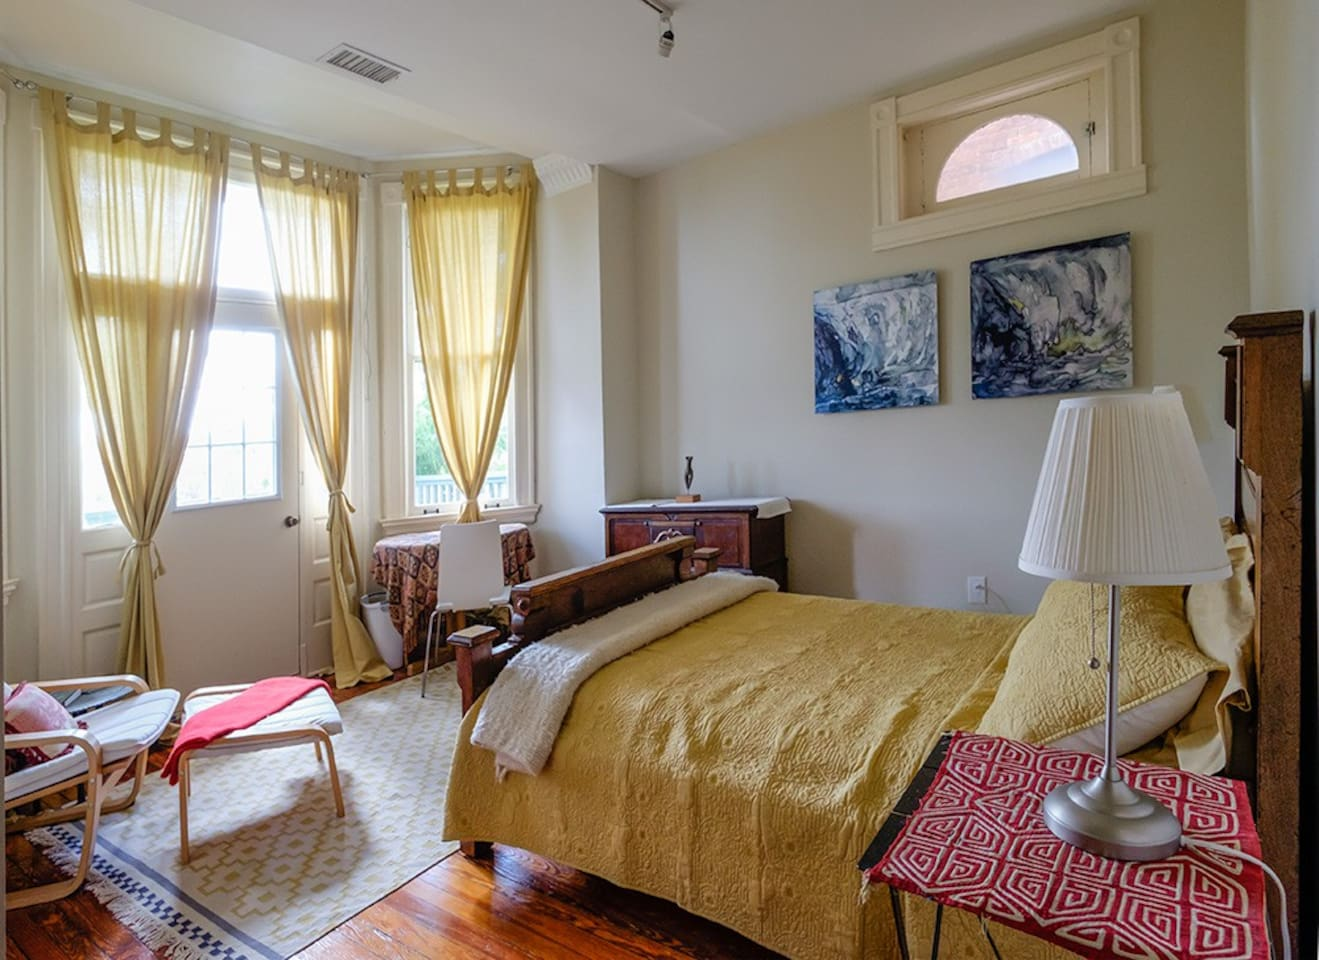 In the spring this room is the most beautiful one with a private porch , and a blooming wisteria